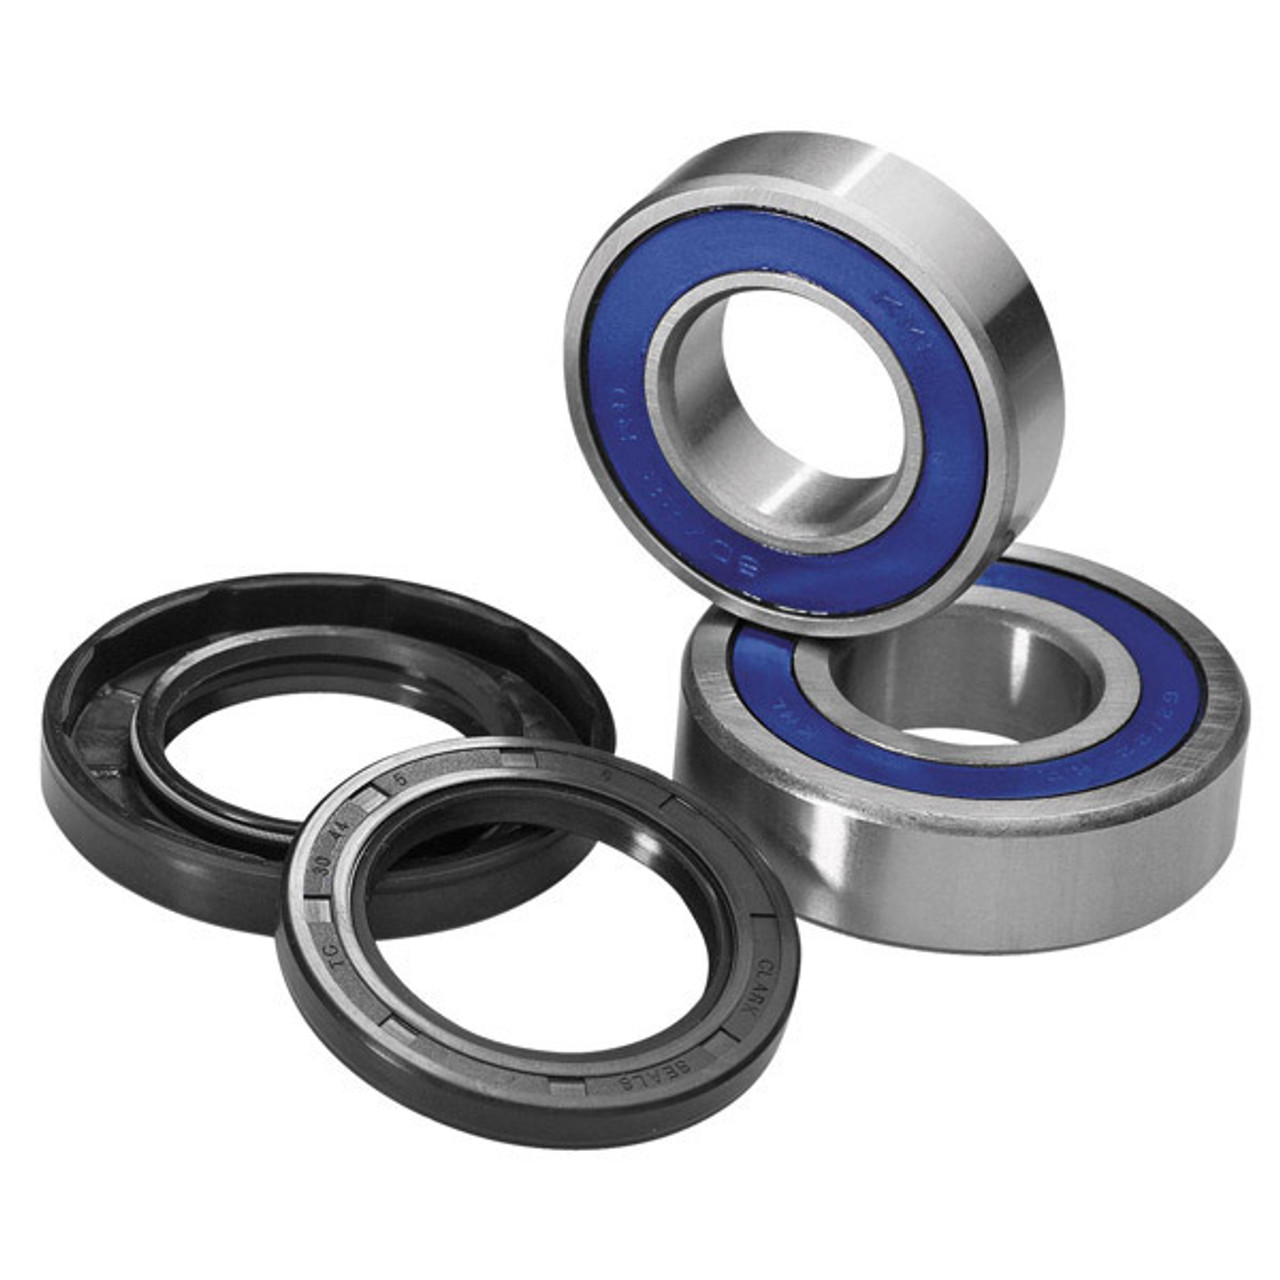 Honda cbr600 rr cbr 600 2007-2009 bearings front wheels kit with gaskets